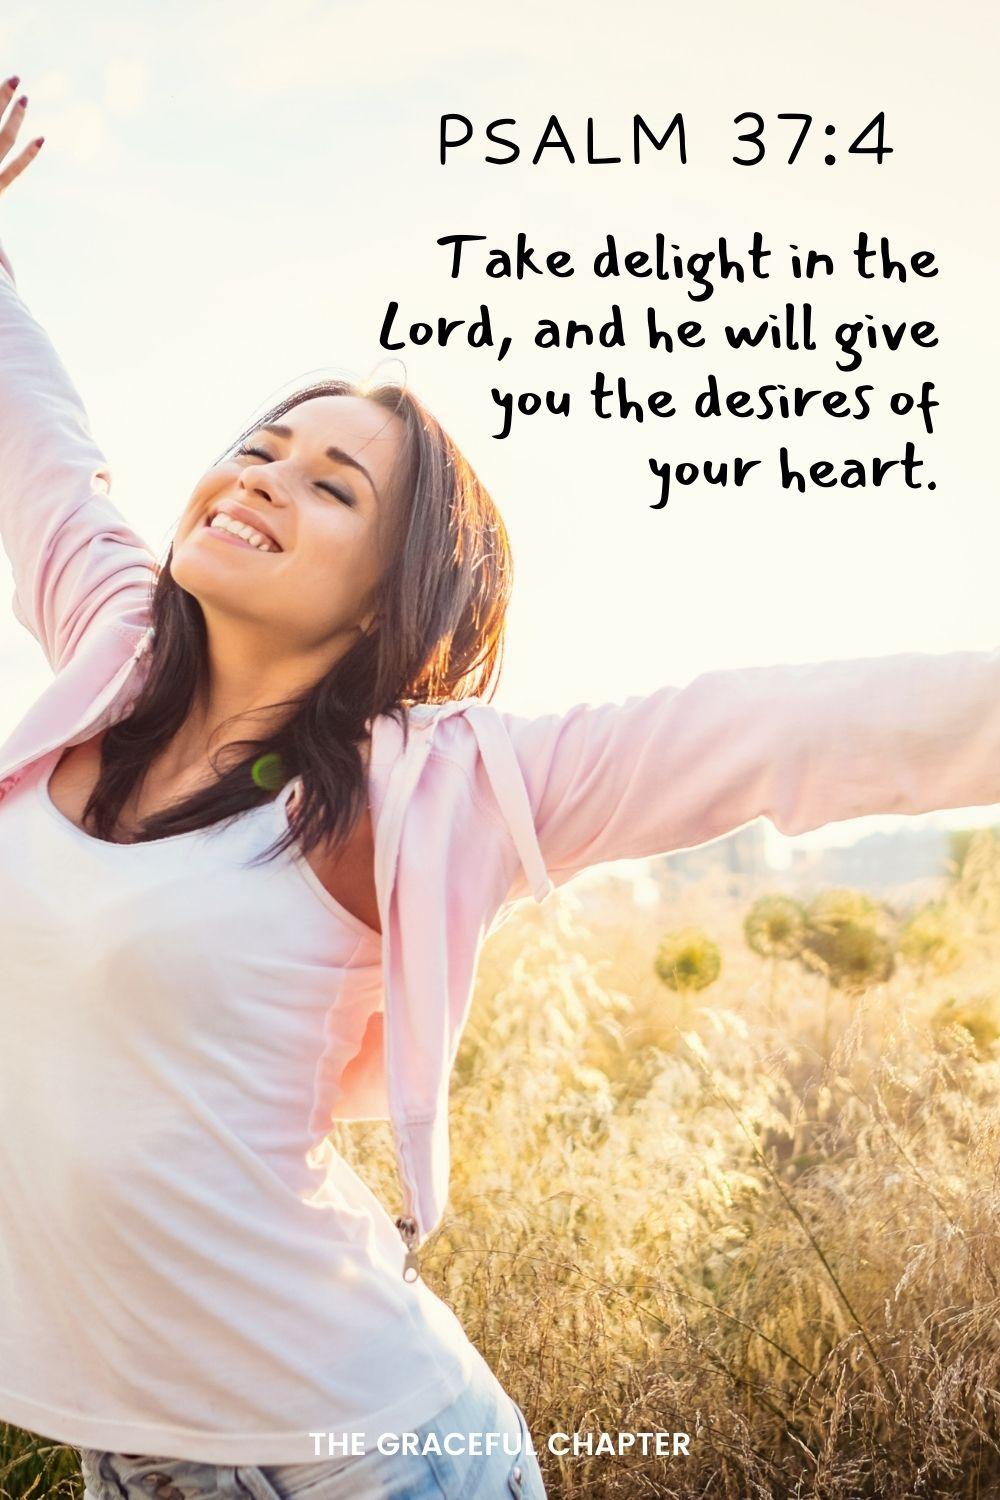 Take delight in the Lord, and he will give you the desires of your heart.  Psalm 37:4